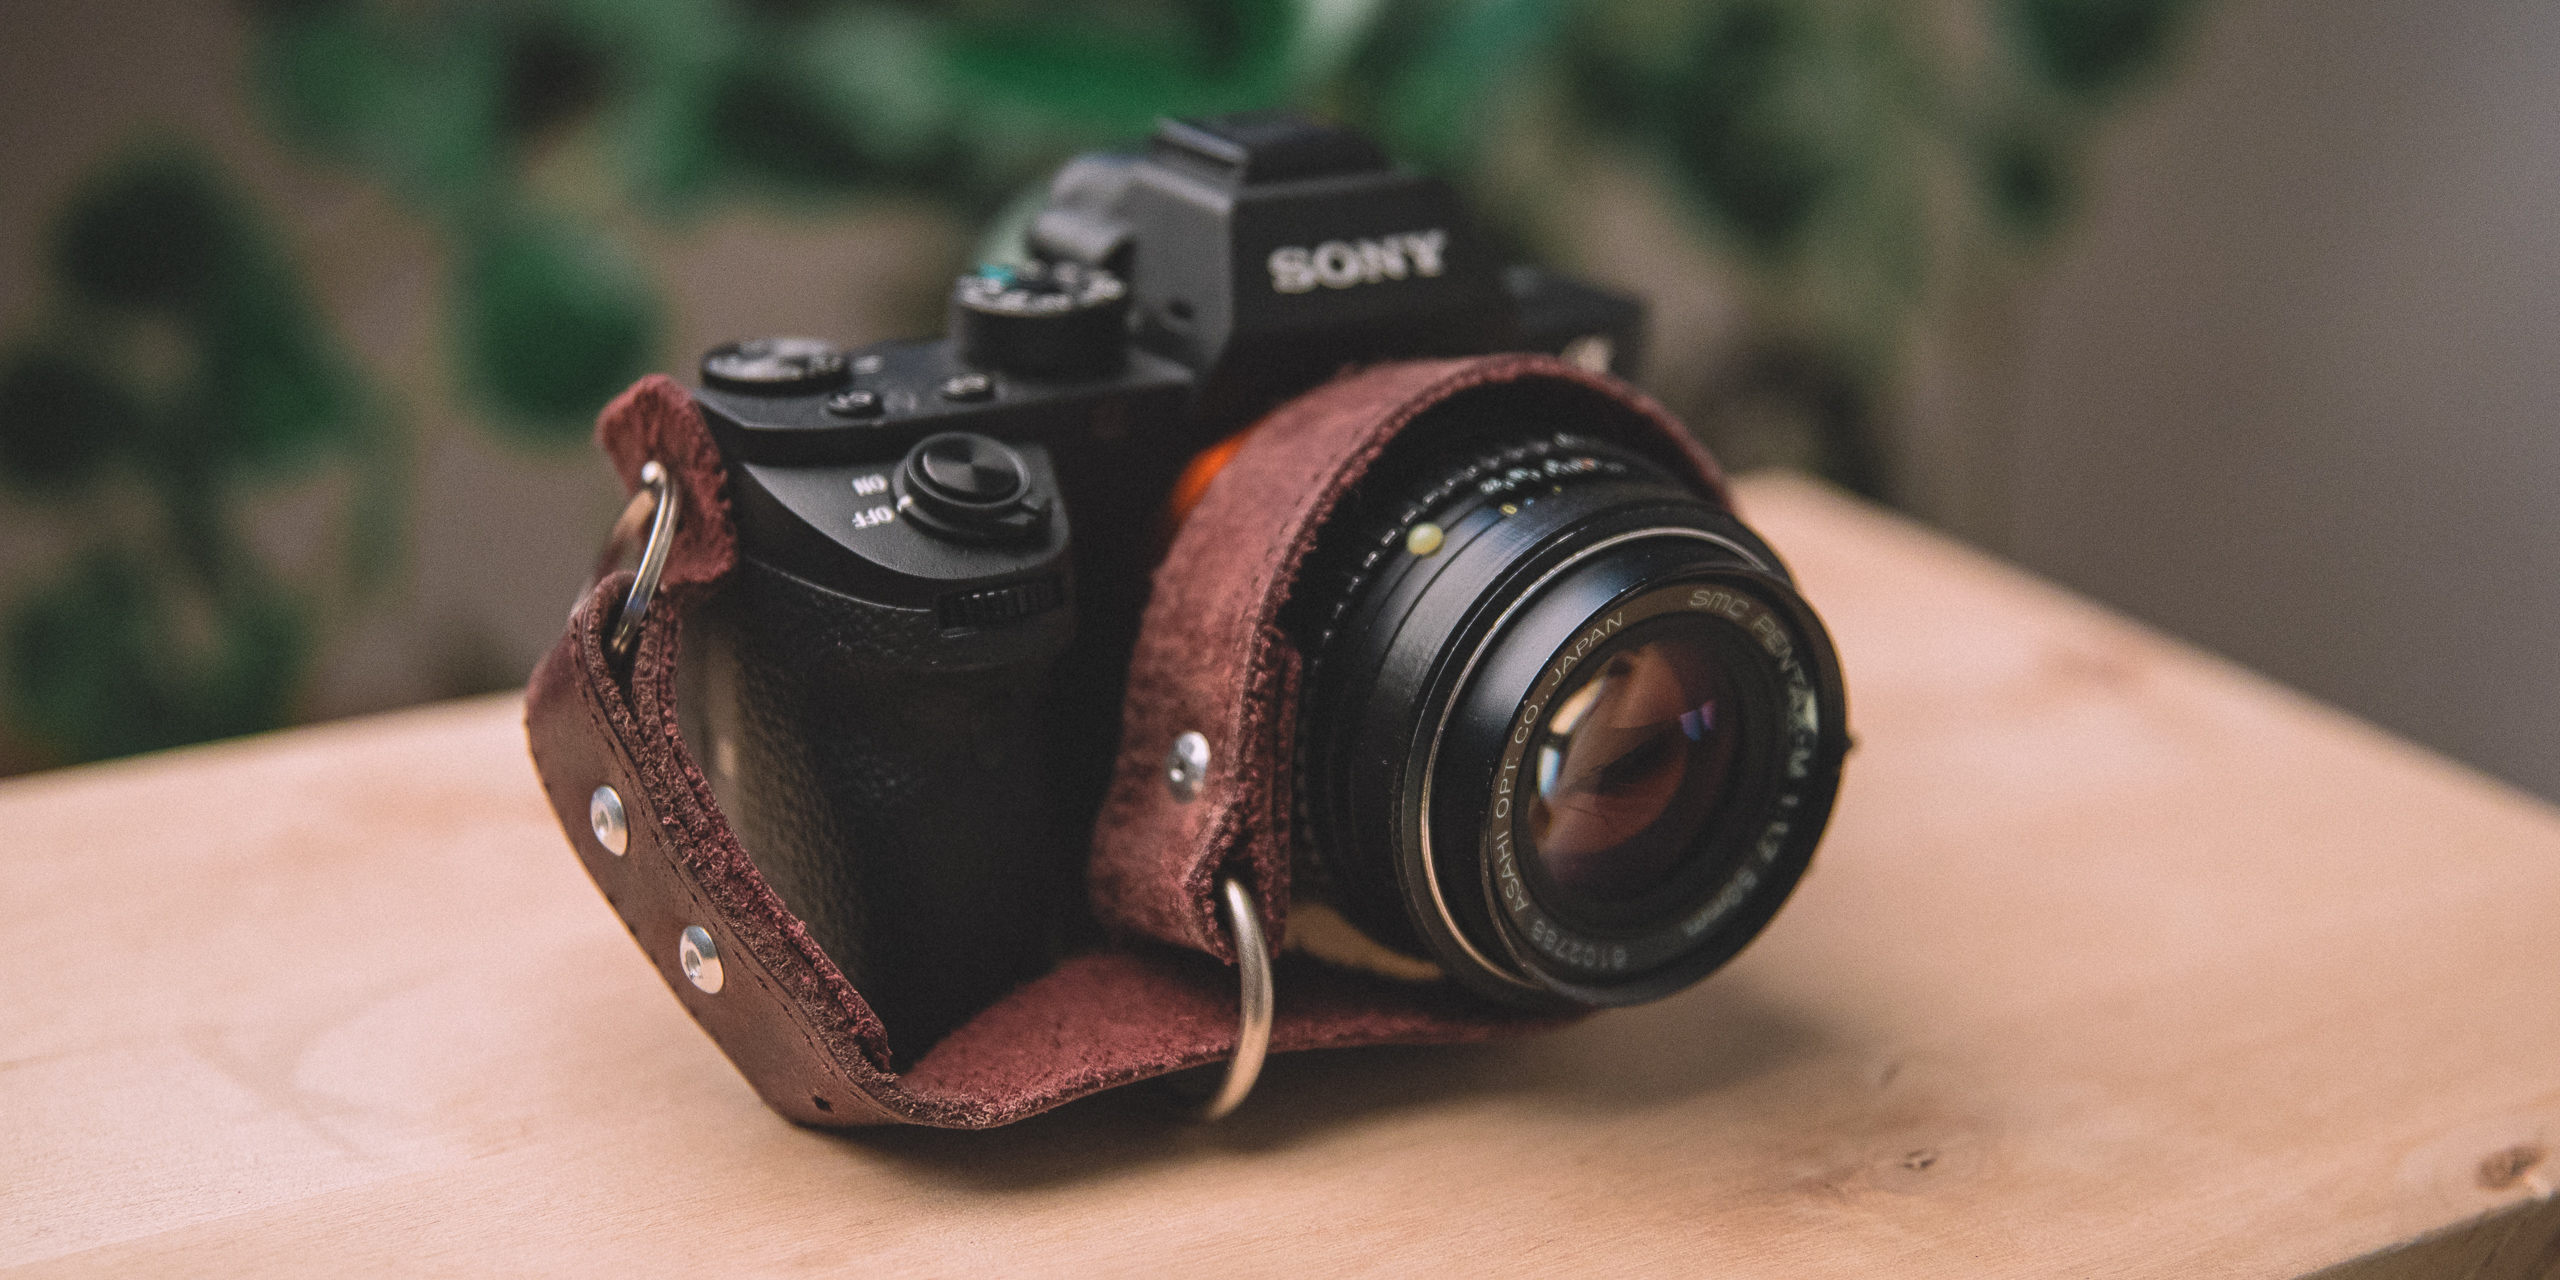 Sony A7RII Leather strap, SMC Pentax